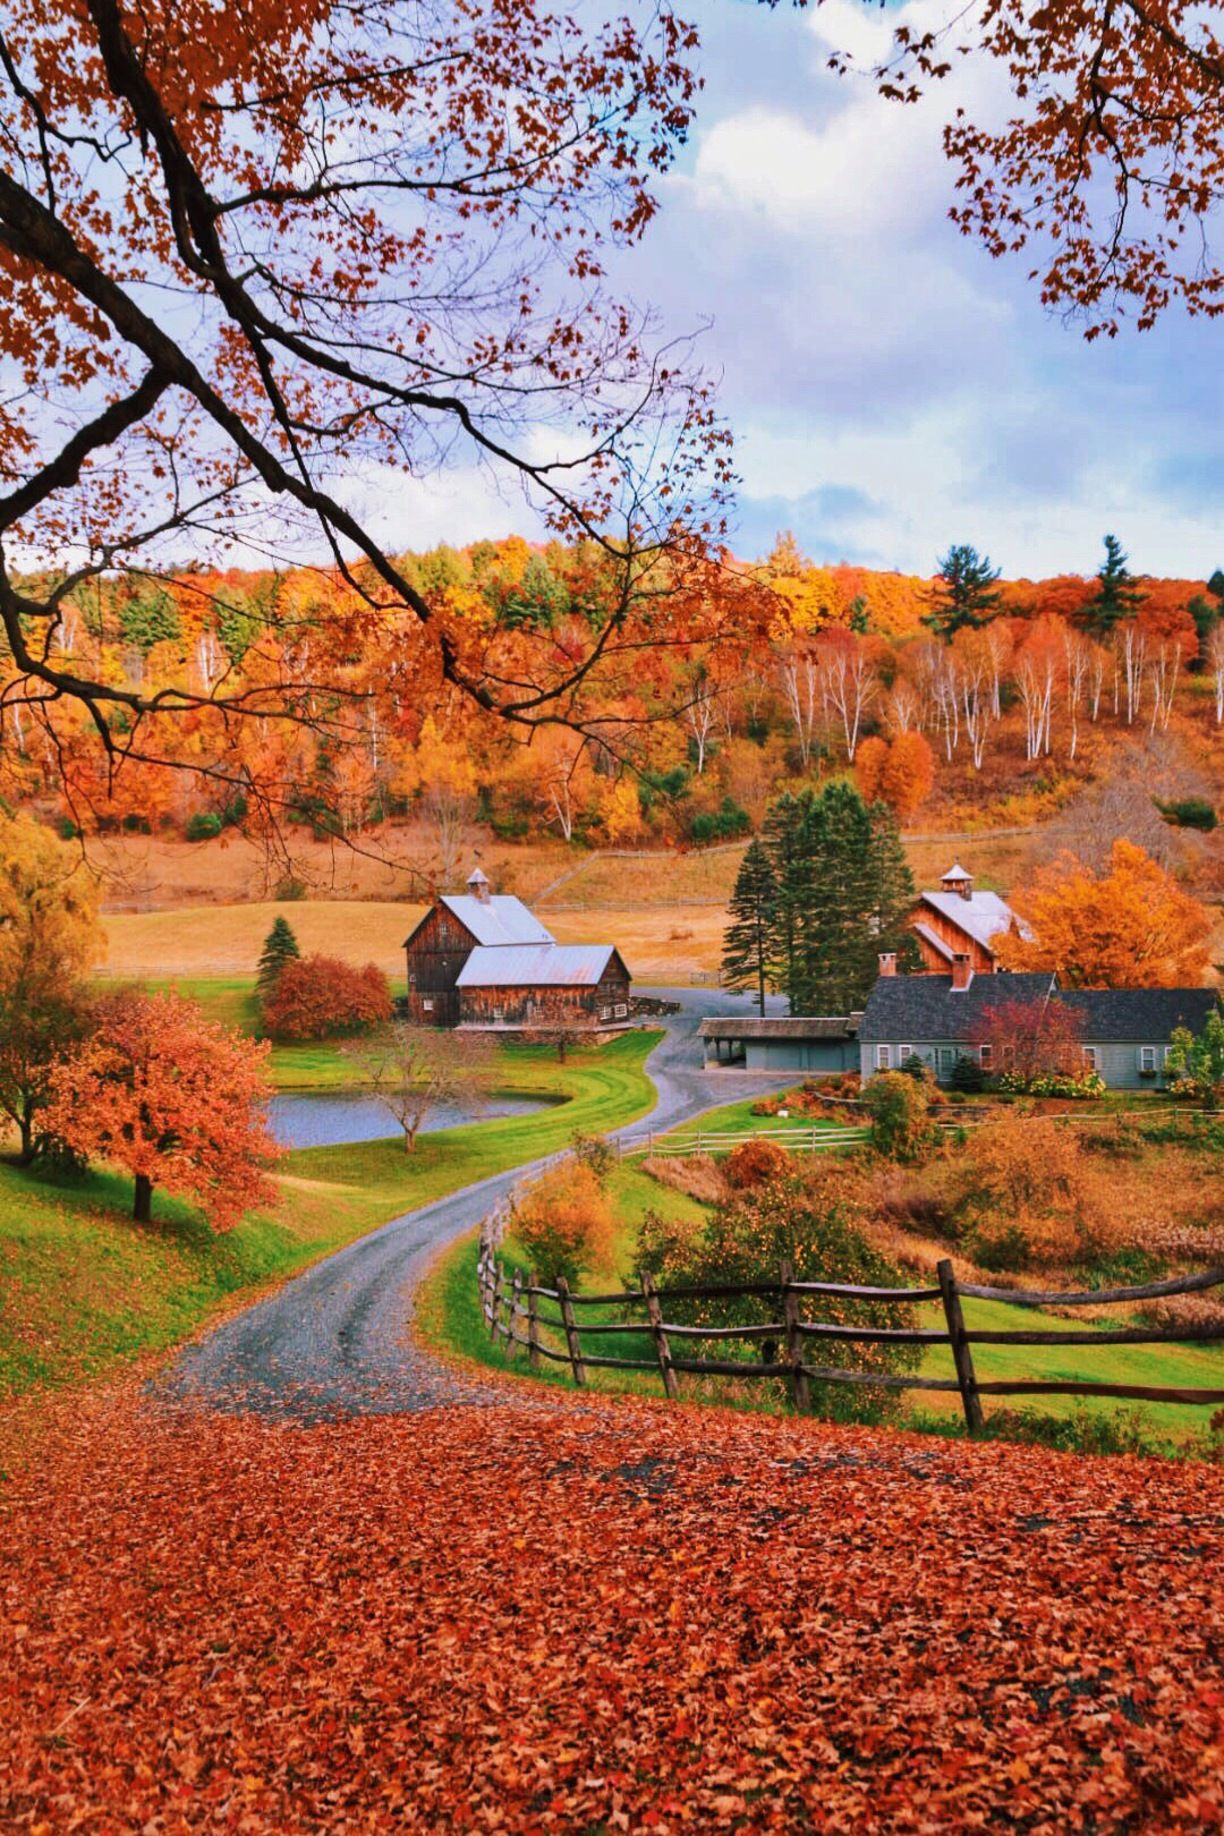 Woodstock, Vermont — By Rachel Robert S